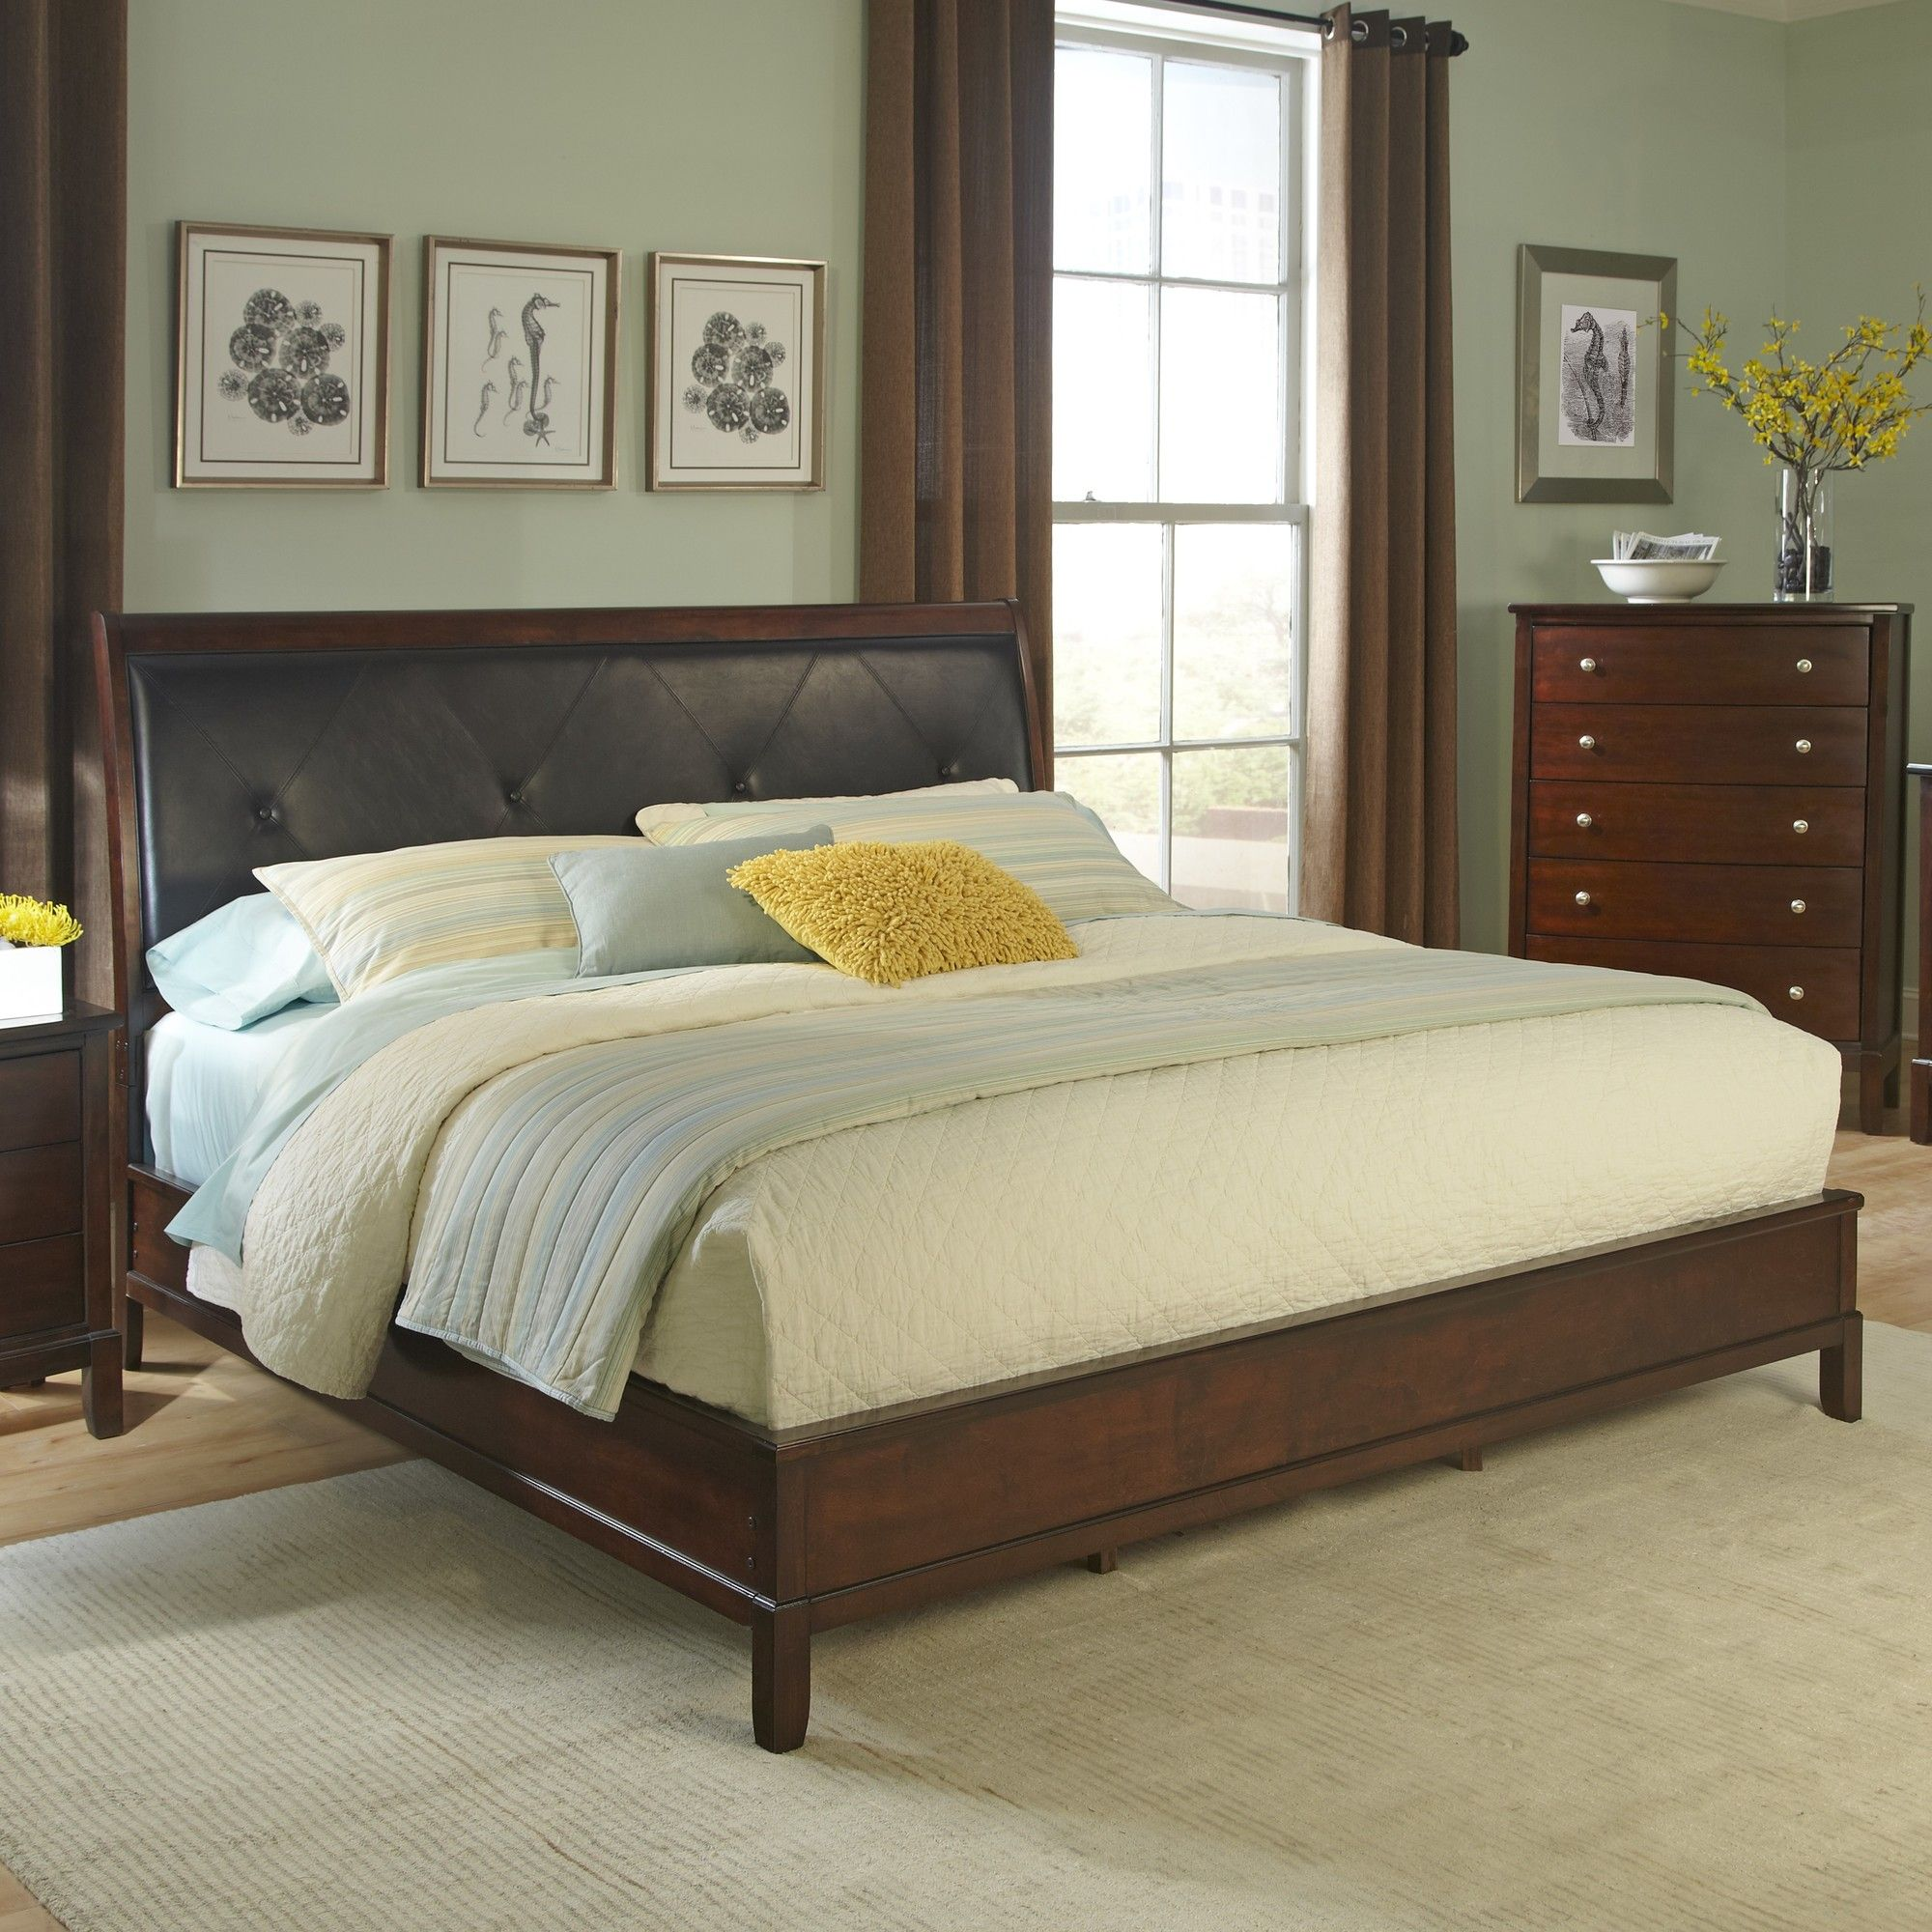 Denver Upholstered Standard Bed | Products in 2019 | King ...